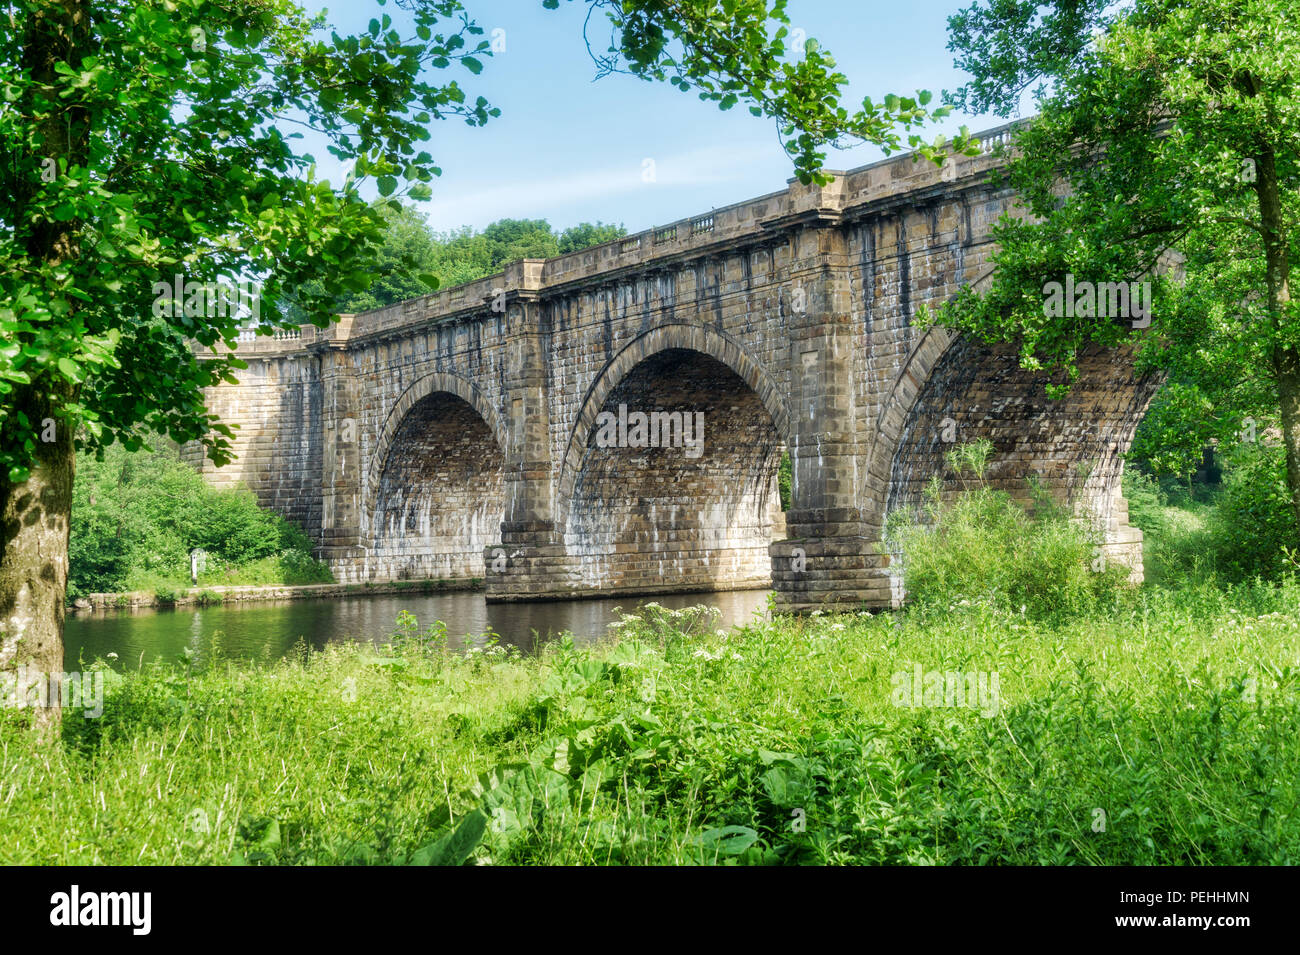 The Lune valley aqueduct, which carries the Lancaster canal over - Stock Image